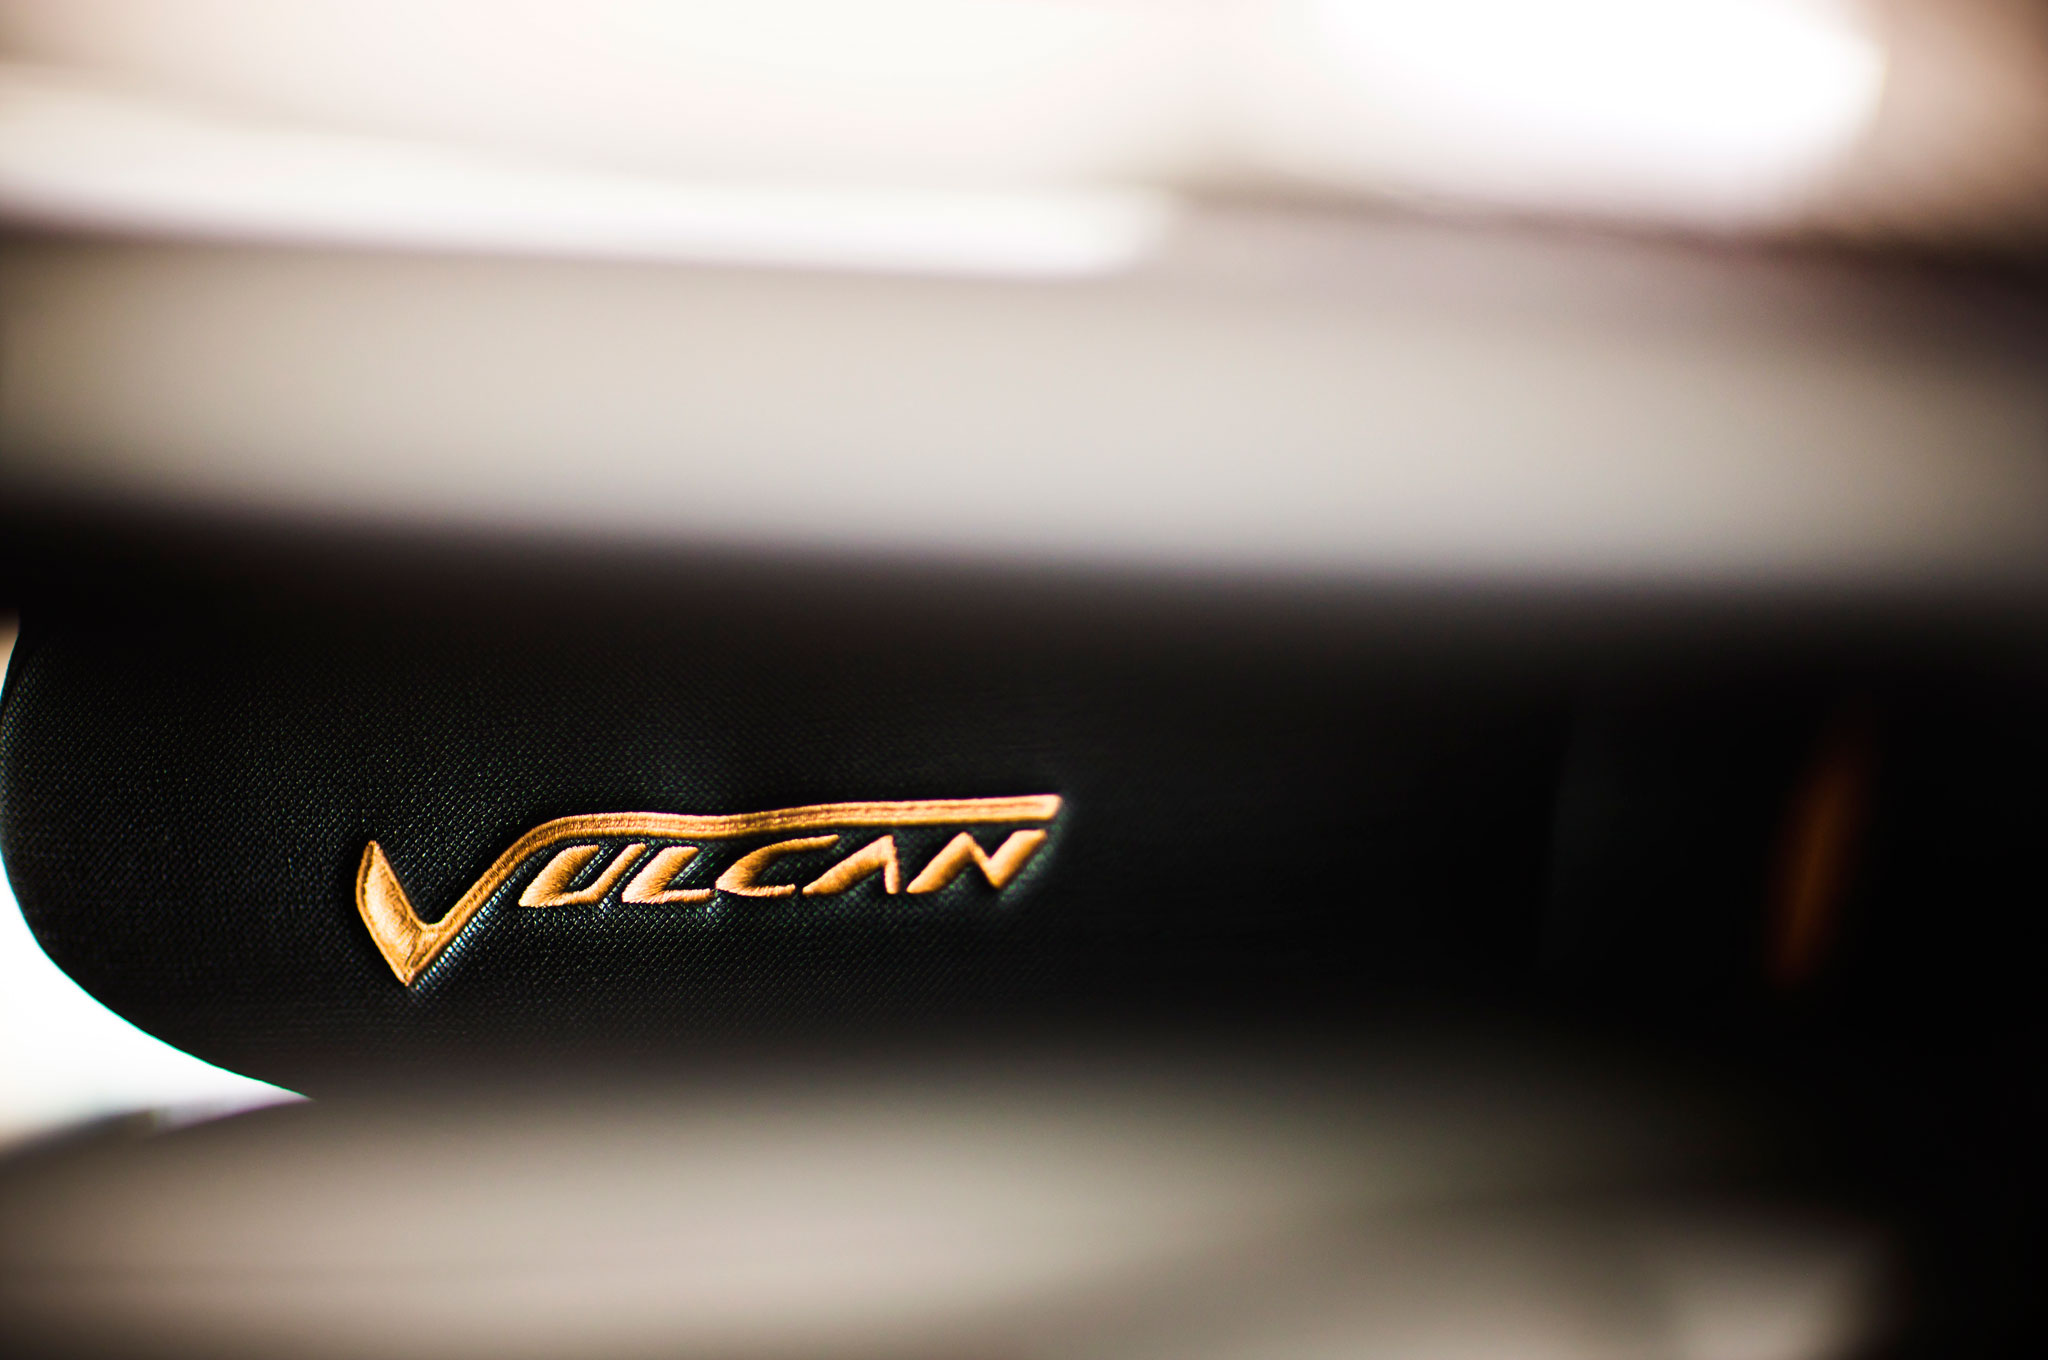 aston Martin Vulcan Rear Three Quarter In Motion 01 besides 11 Awesome Aston Martin Facts also Eight Things We Learned Riding In A 2016 Aston Martin Vulcan as well aston Martin Vulcan Rear Three Quarter In Motion 01 likewise Aston Martin Vulcan. on 12 things we learned about aston martin vulcan